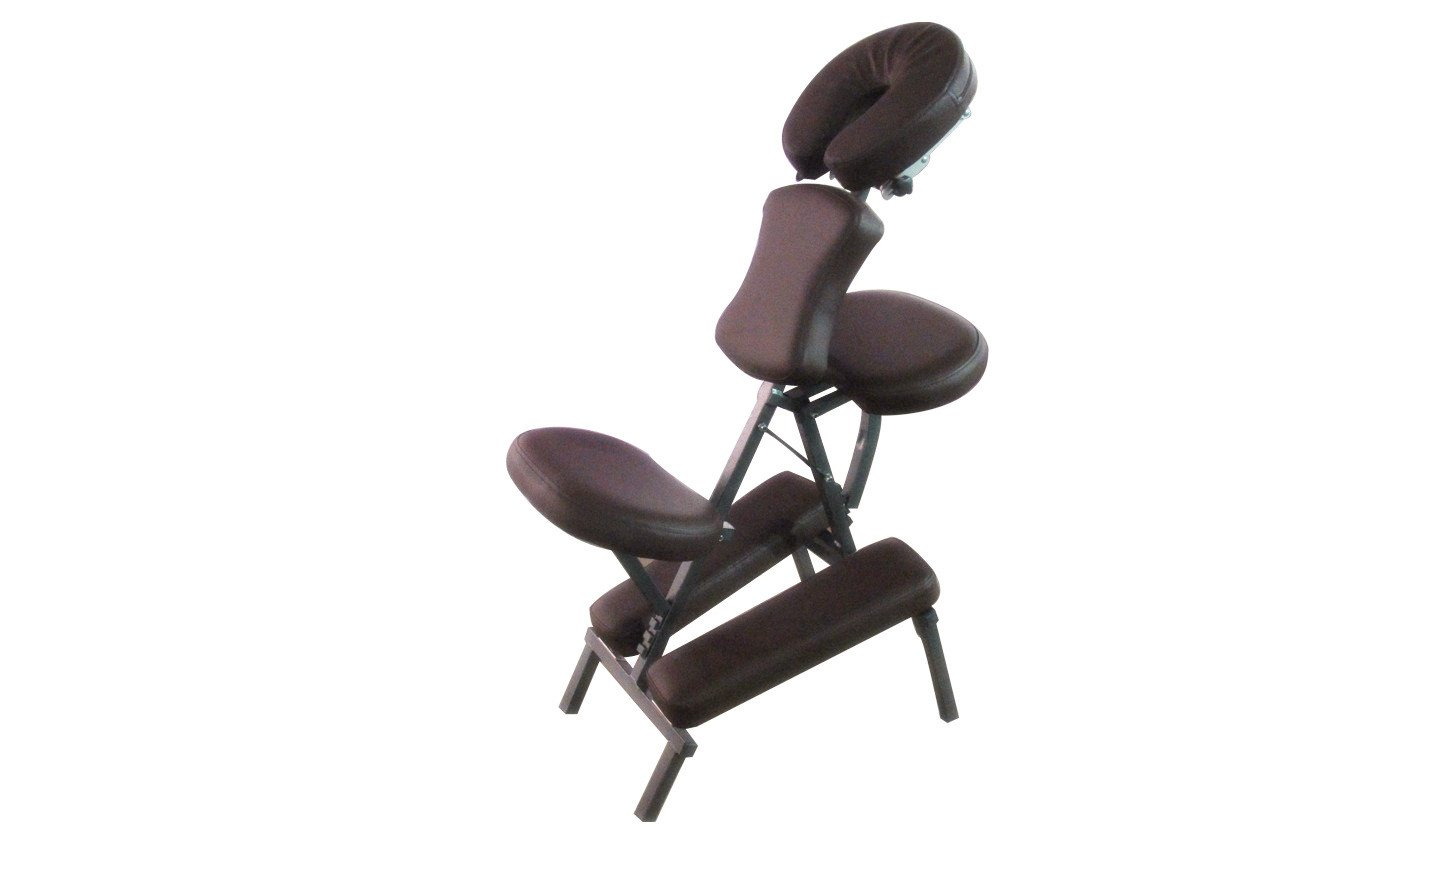 Sivan Health and Fitness MS08-CHCO Portable Massage Folding Chair, Chocolate